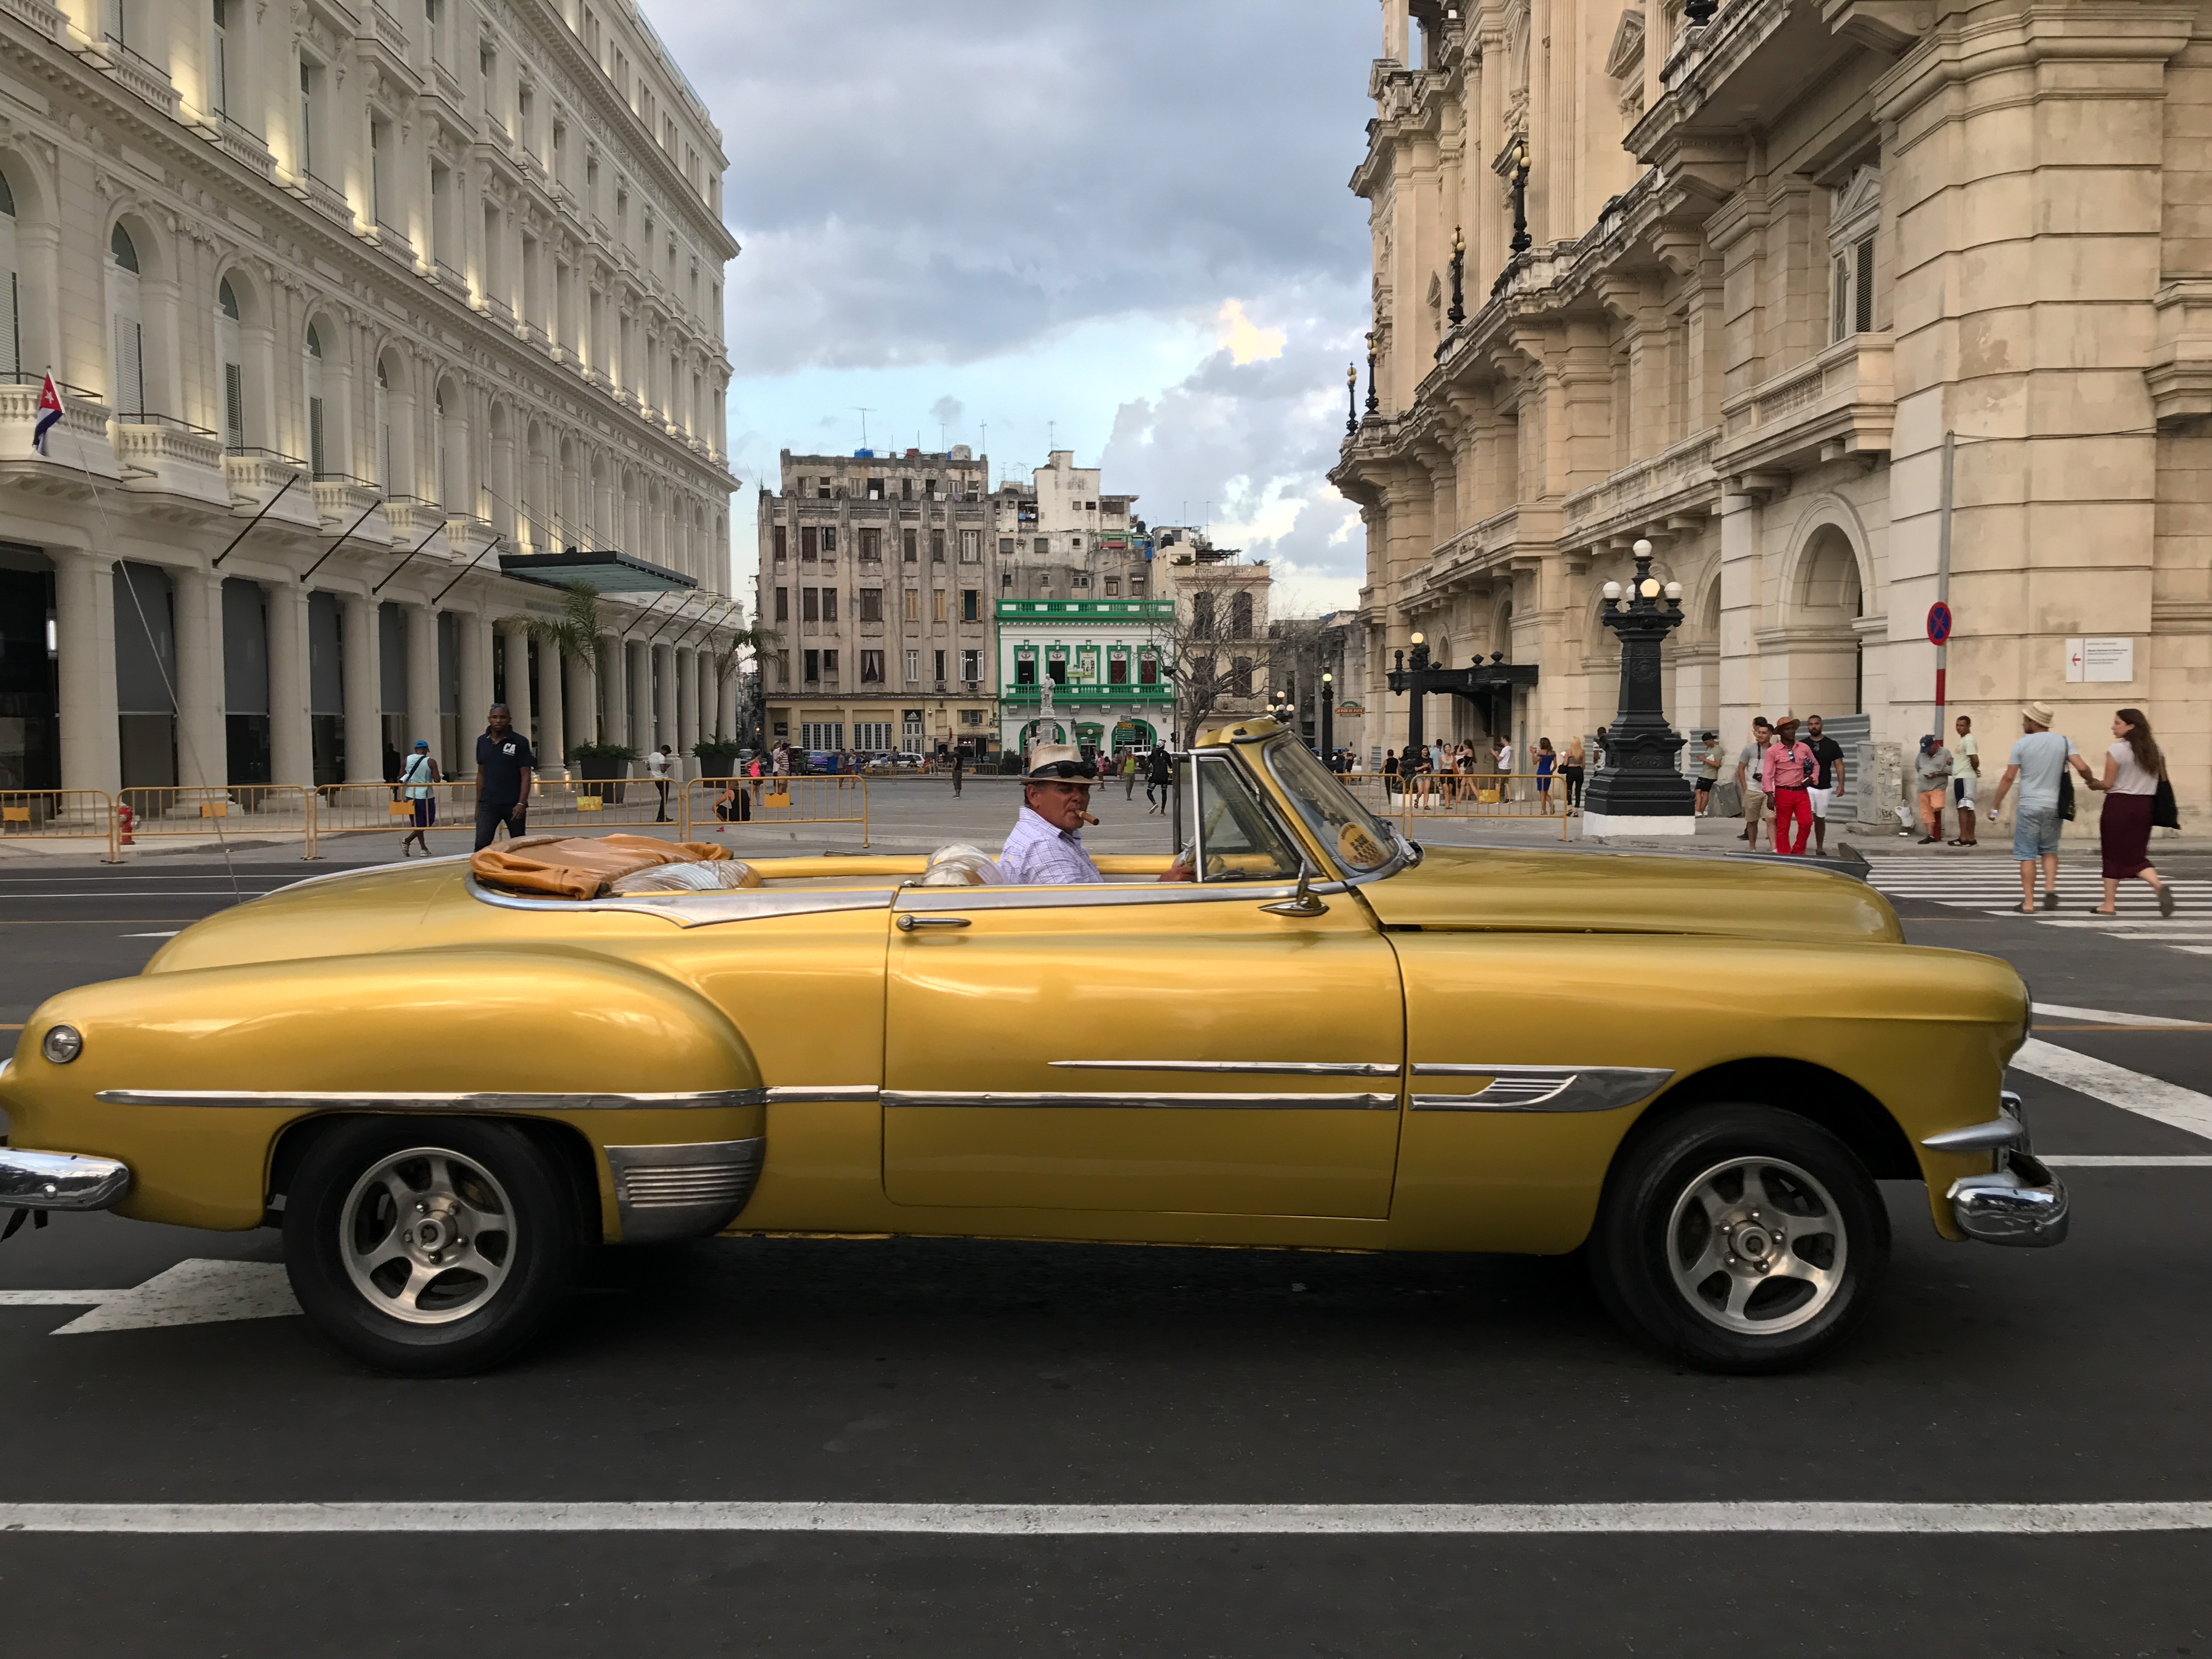 You Can't Visit Cuba Without Reading These Books